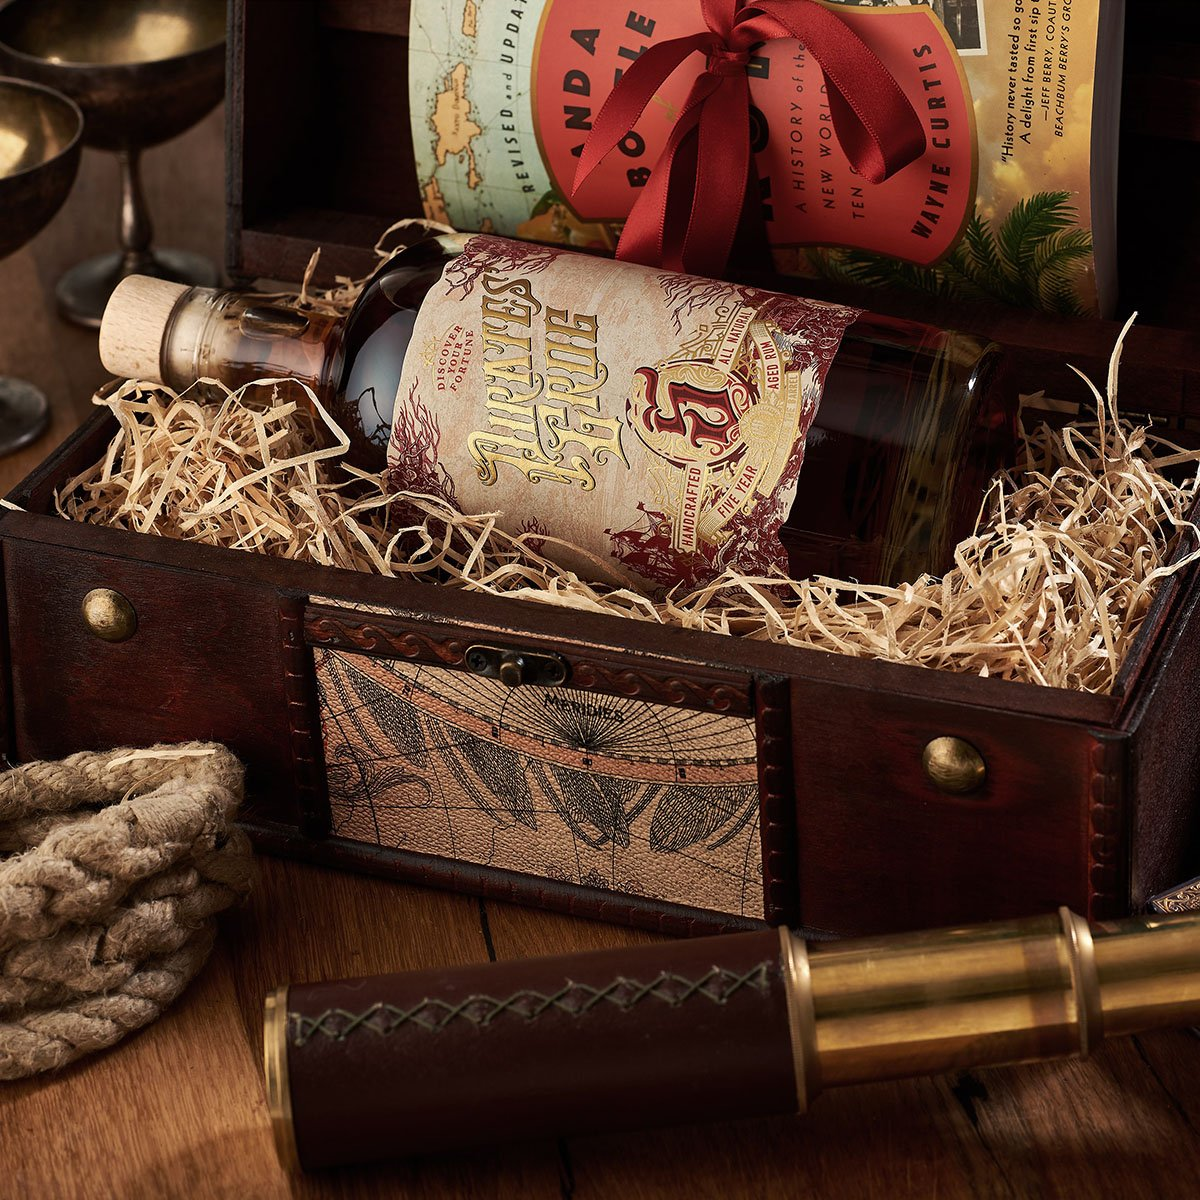 Pirate's Grog Rum Gift Chest